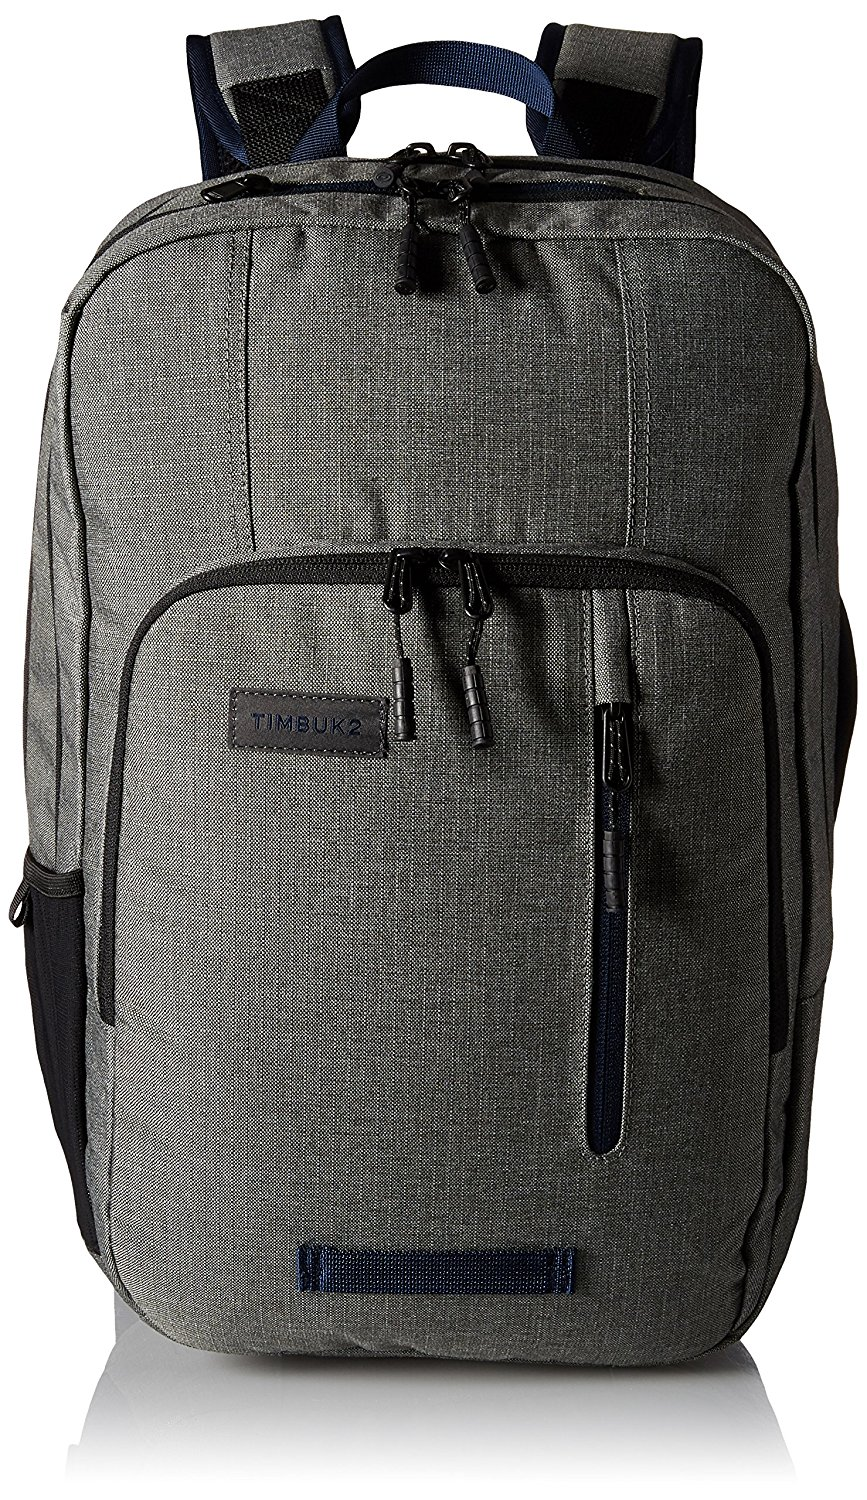 Clever extras and pockets galore in this bag make it versatile enough for when you're headed across town or across the country. - $$